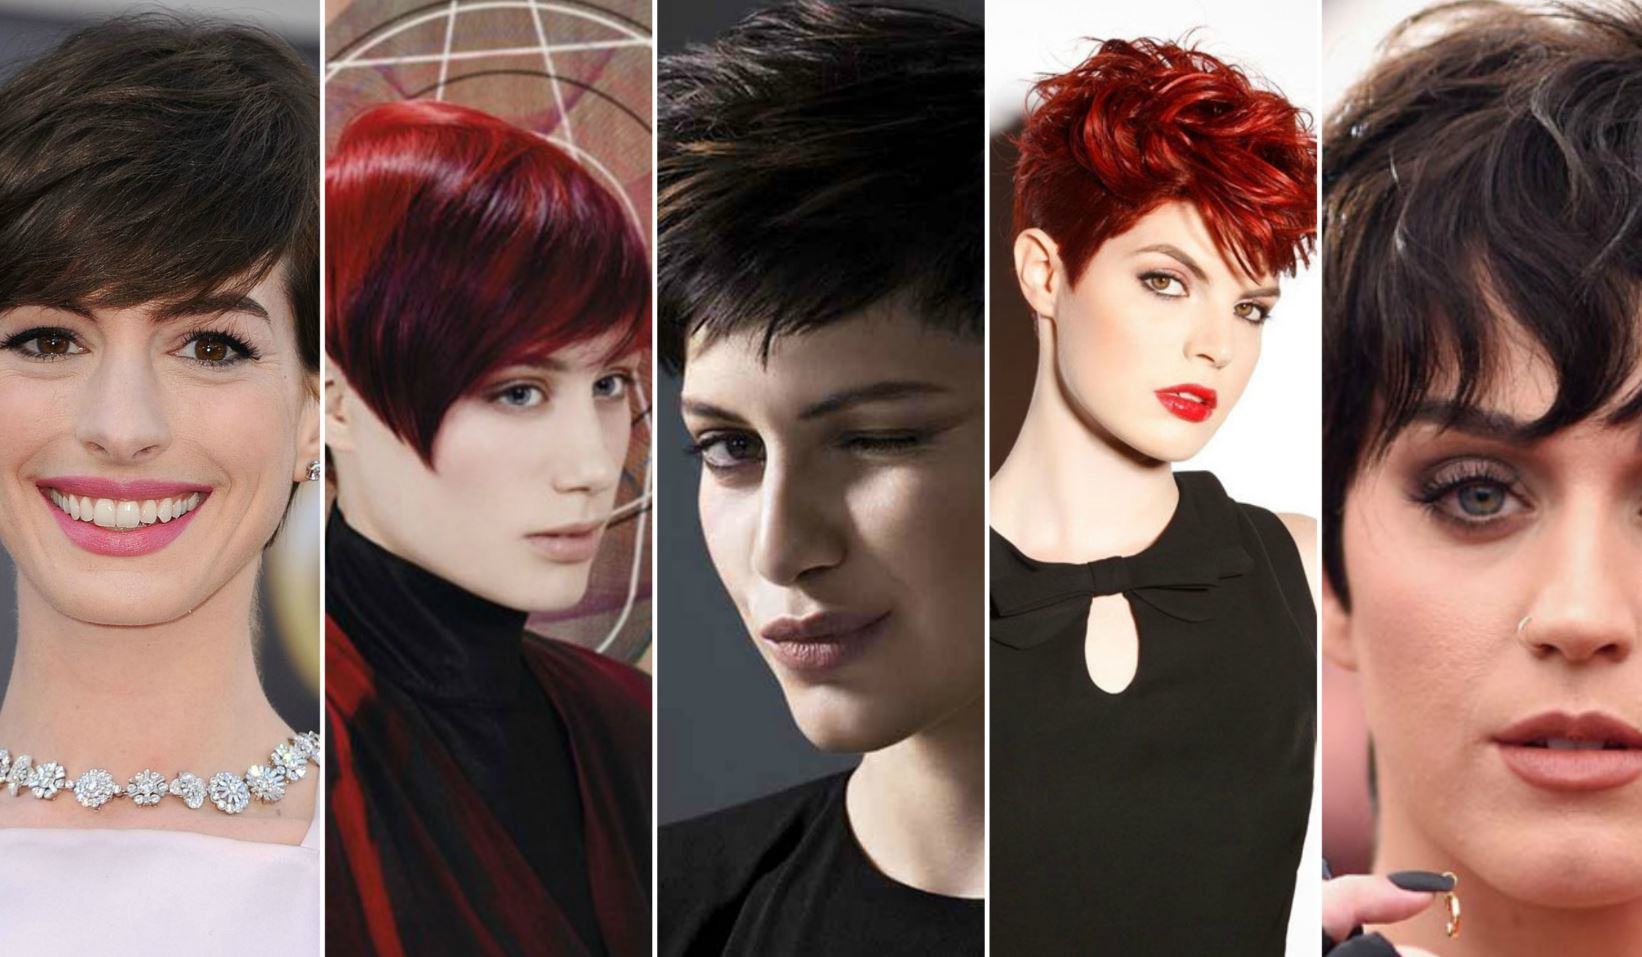 Best 150 Short Haircuts Ideas for Women to Look More Stylish ...